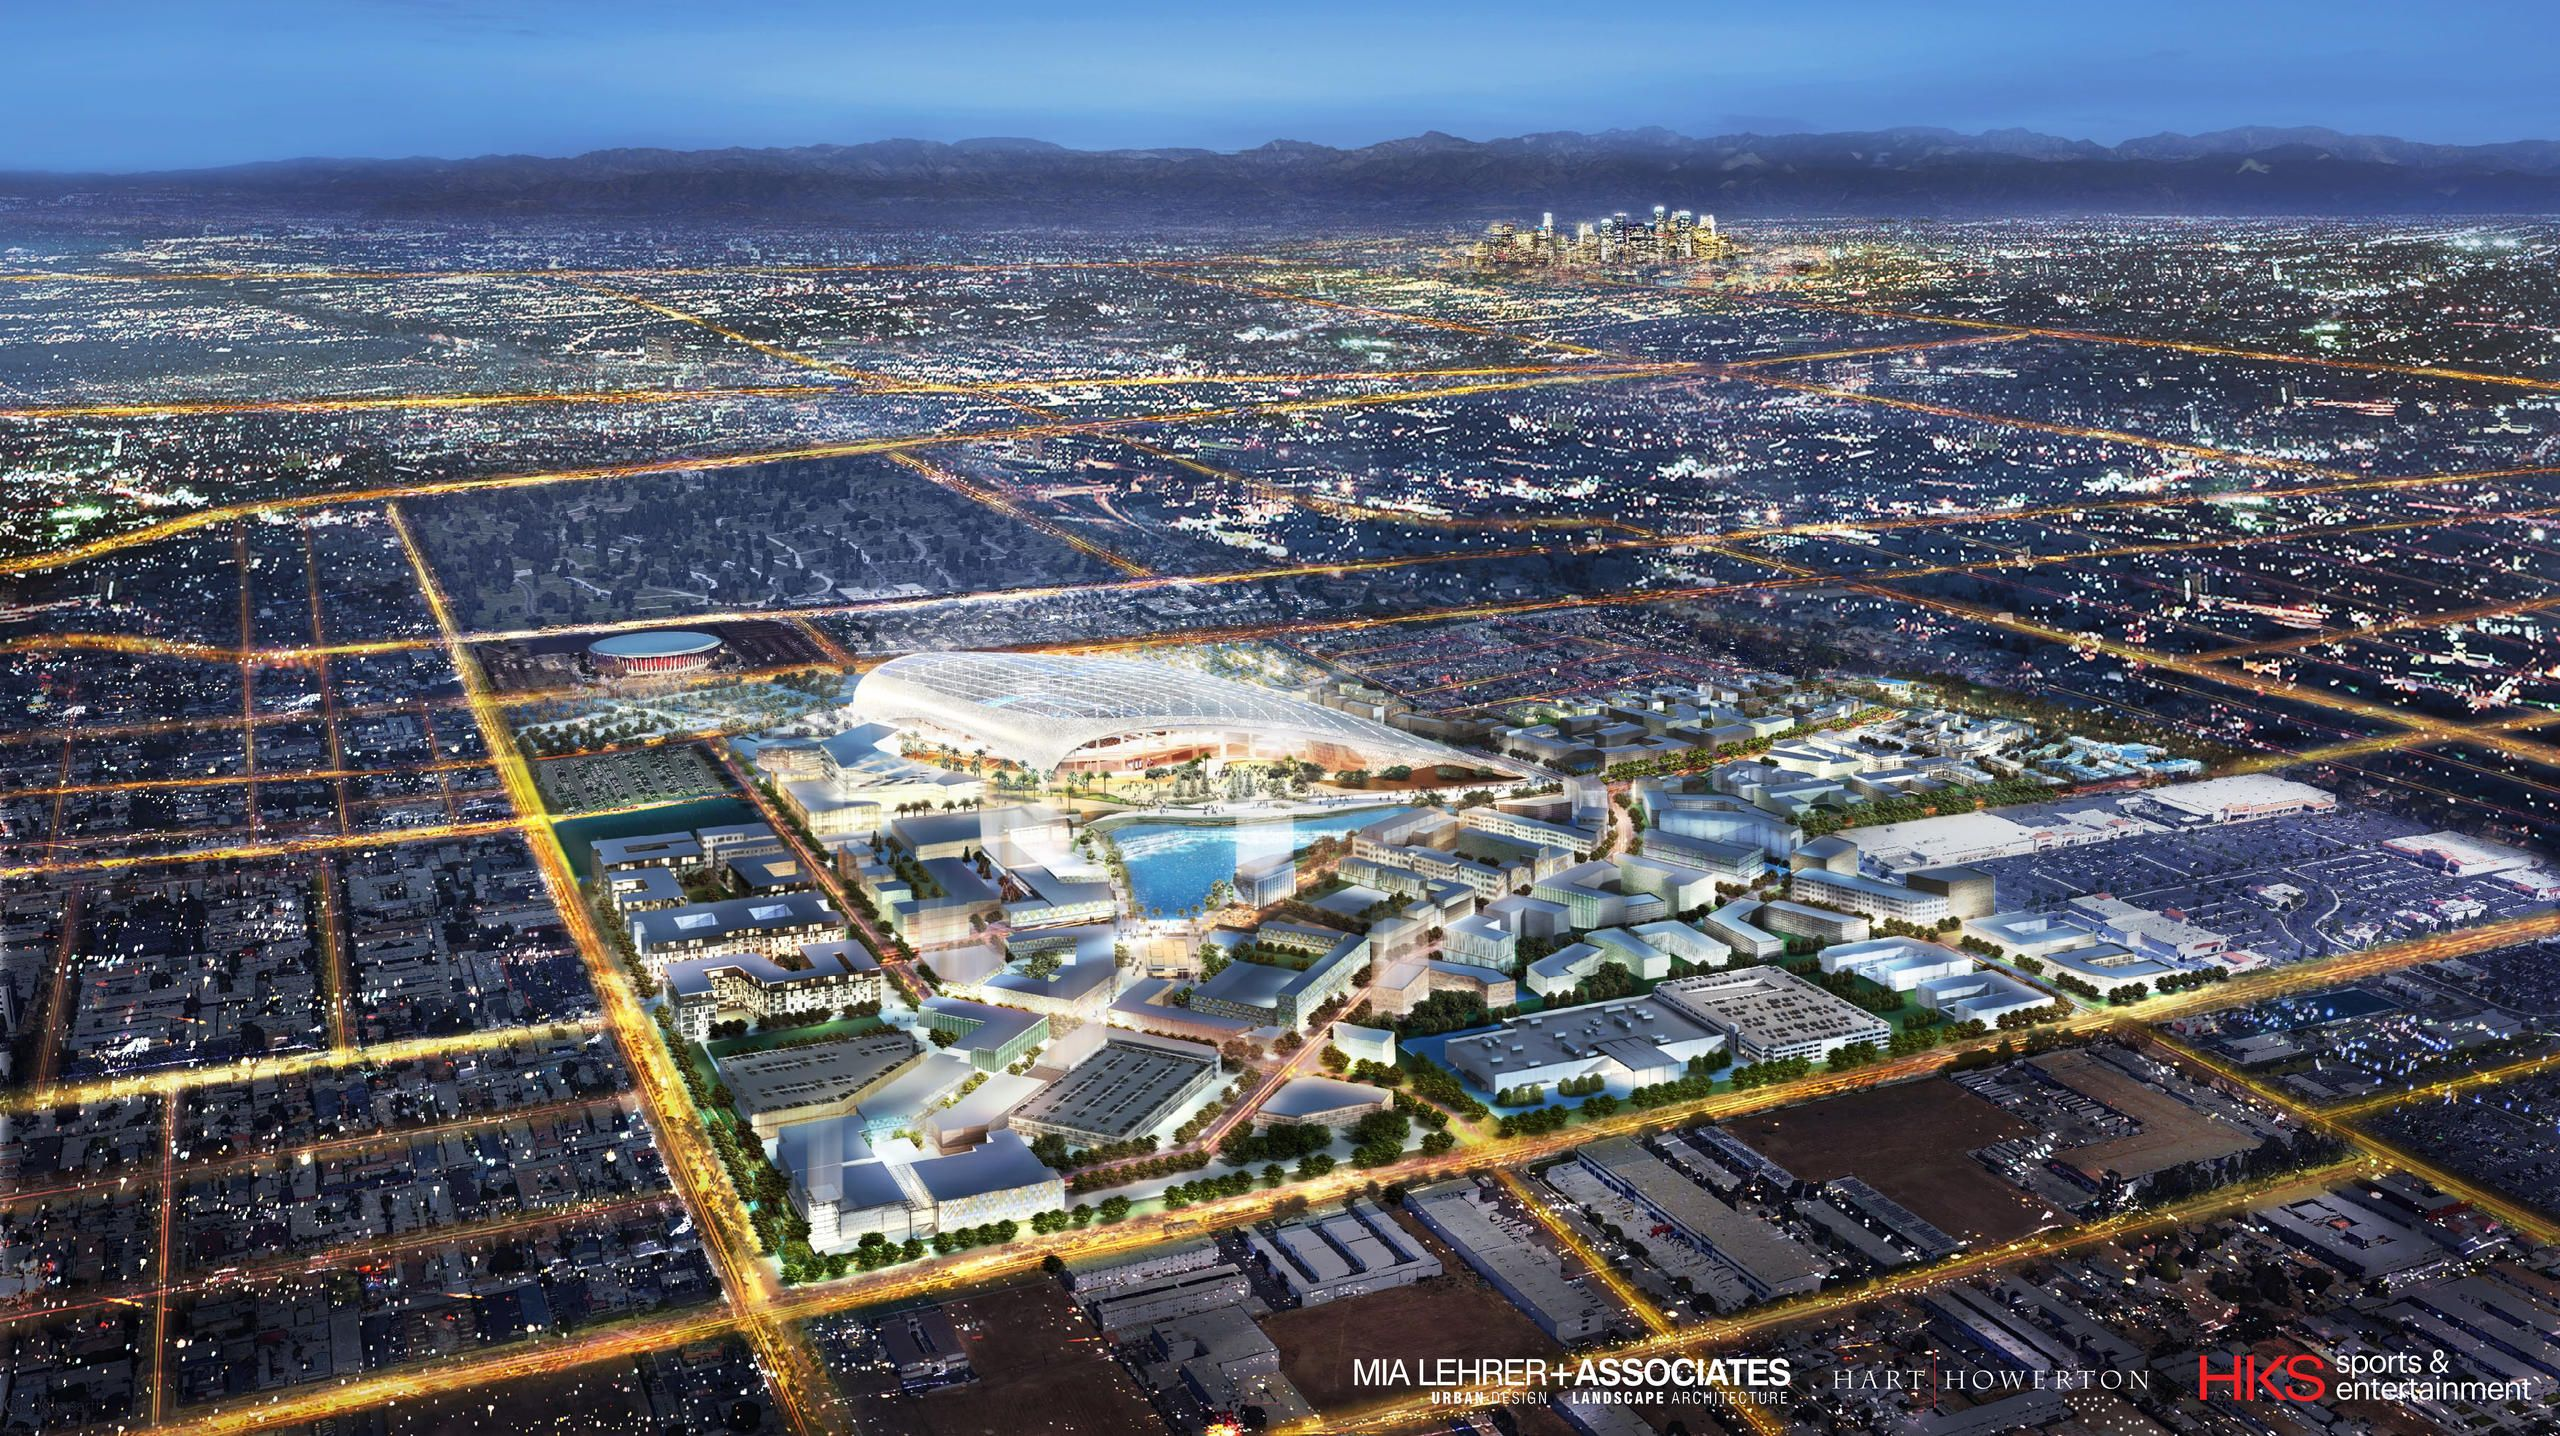 The Latest Renderings Of The New Los Angeles Stadium And Entertainment District At Hollywood Park Lased Set To Debut I Inglewood Artificial Lake Nfl Stadiums